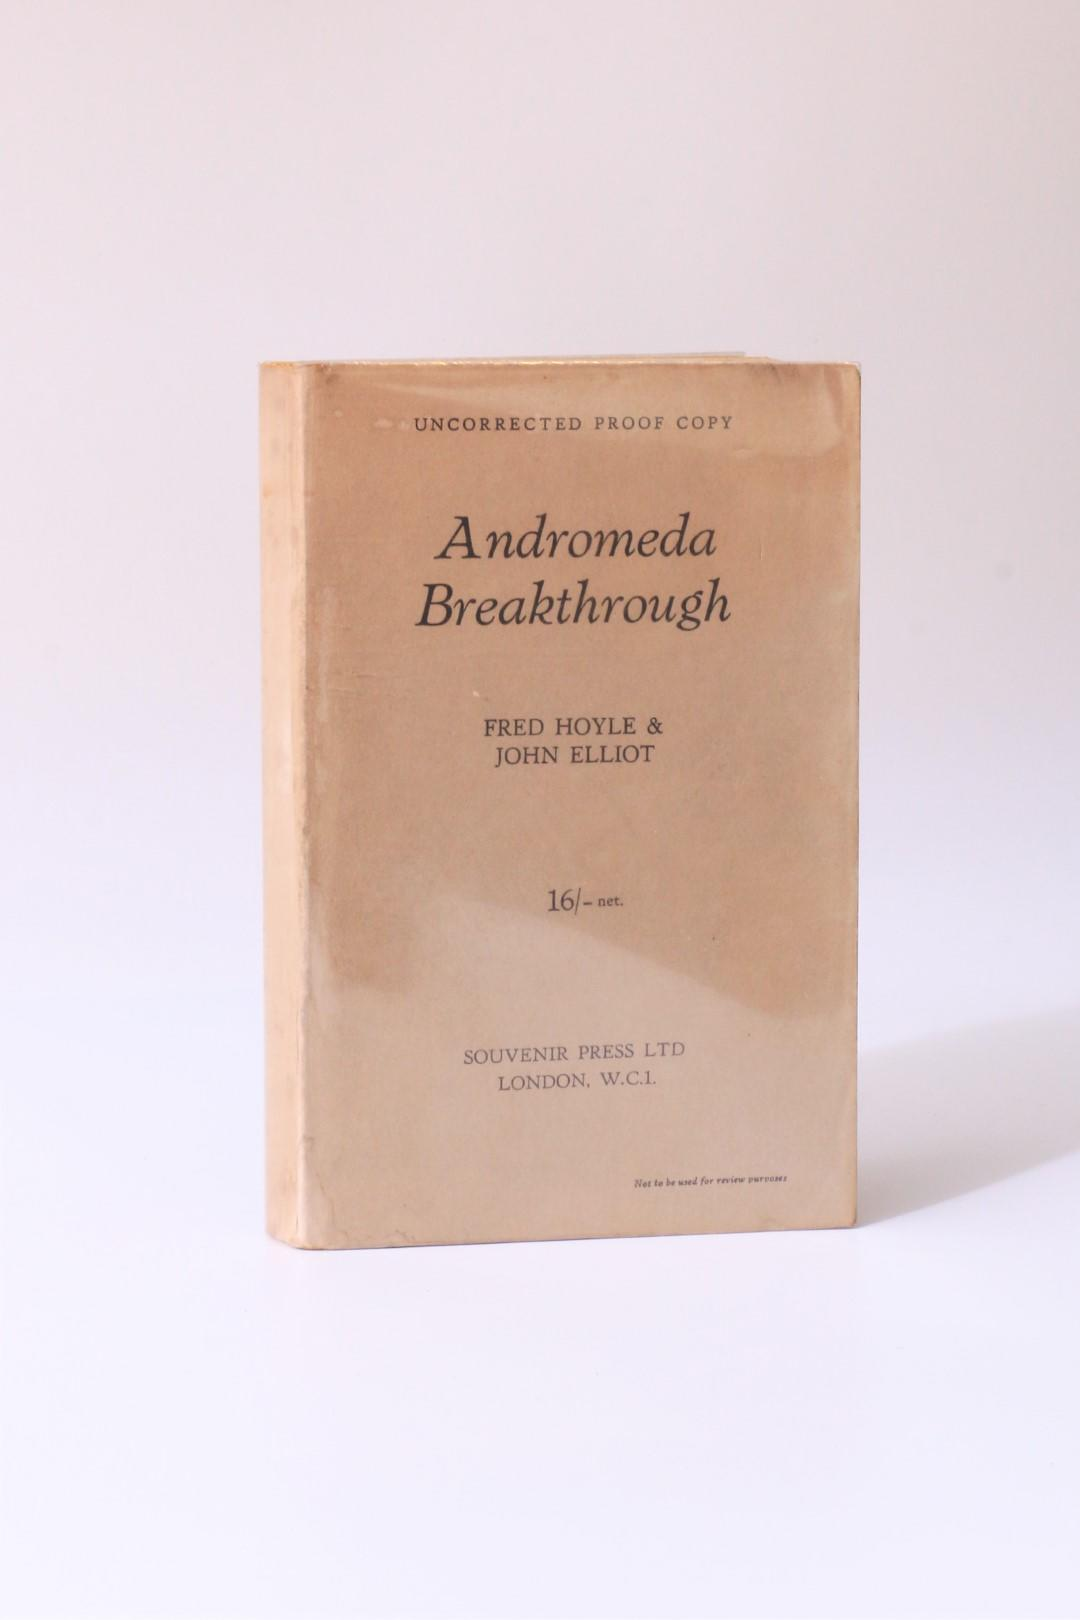 Fred Hoyle & John Elliot - Andromeda Breakthrough - Souvenir Press, 1964, Proof.